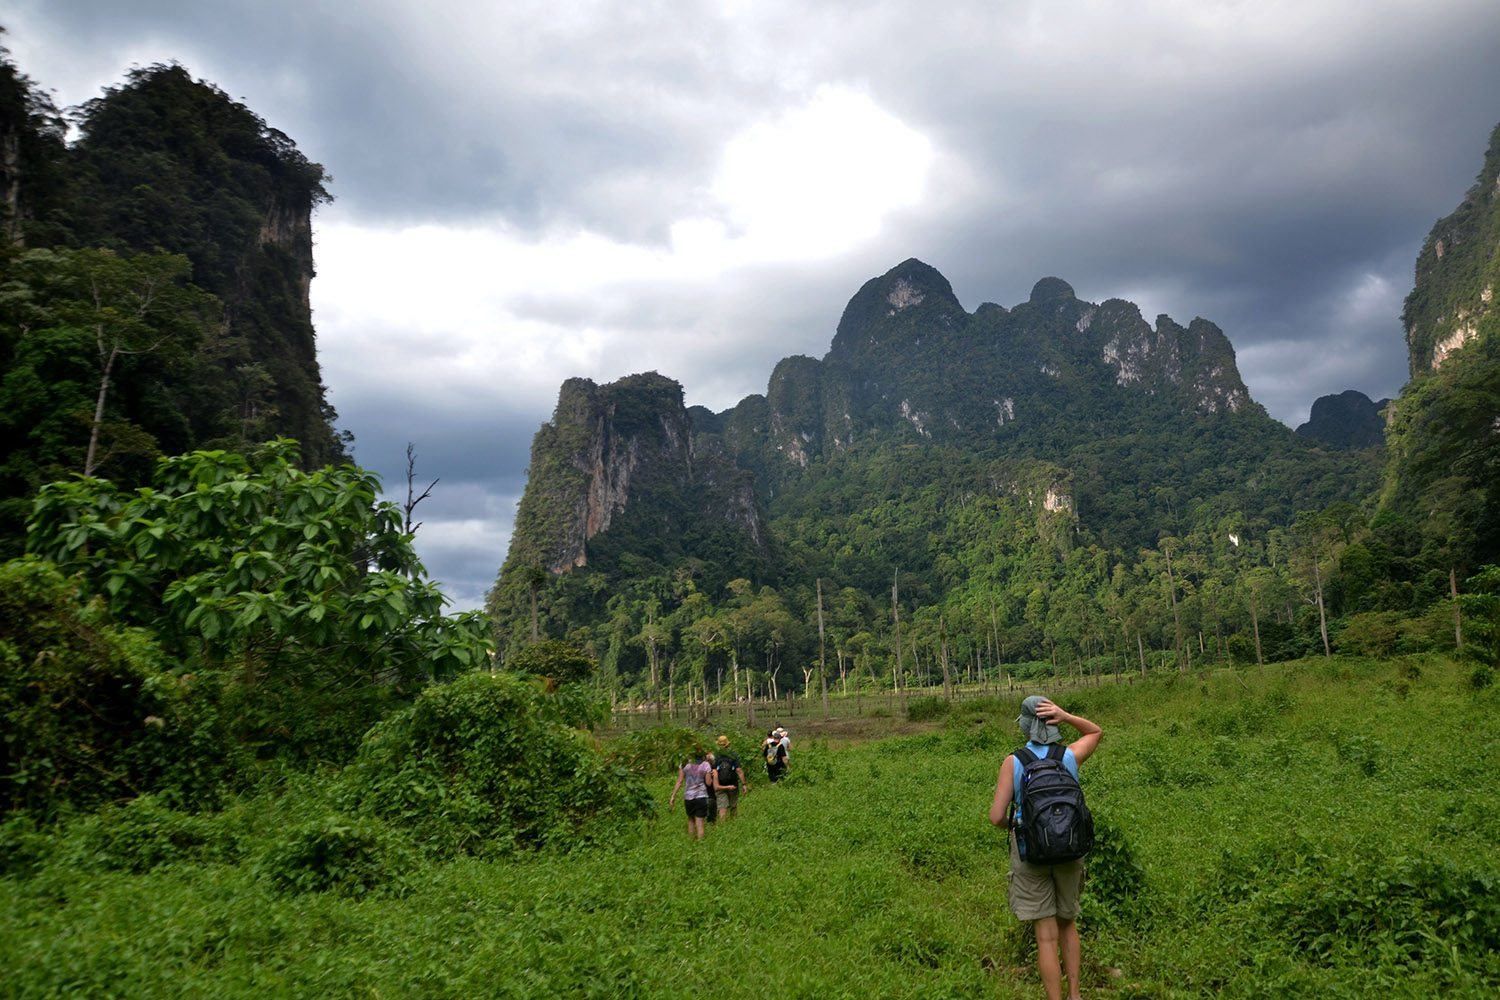 Hiking through the jungles of Khao Sok